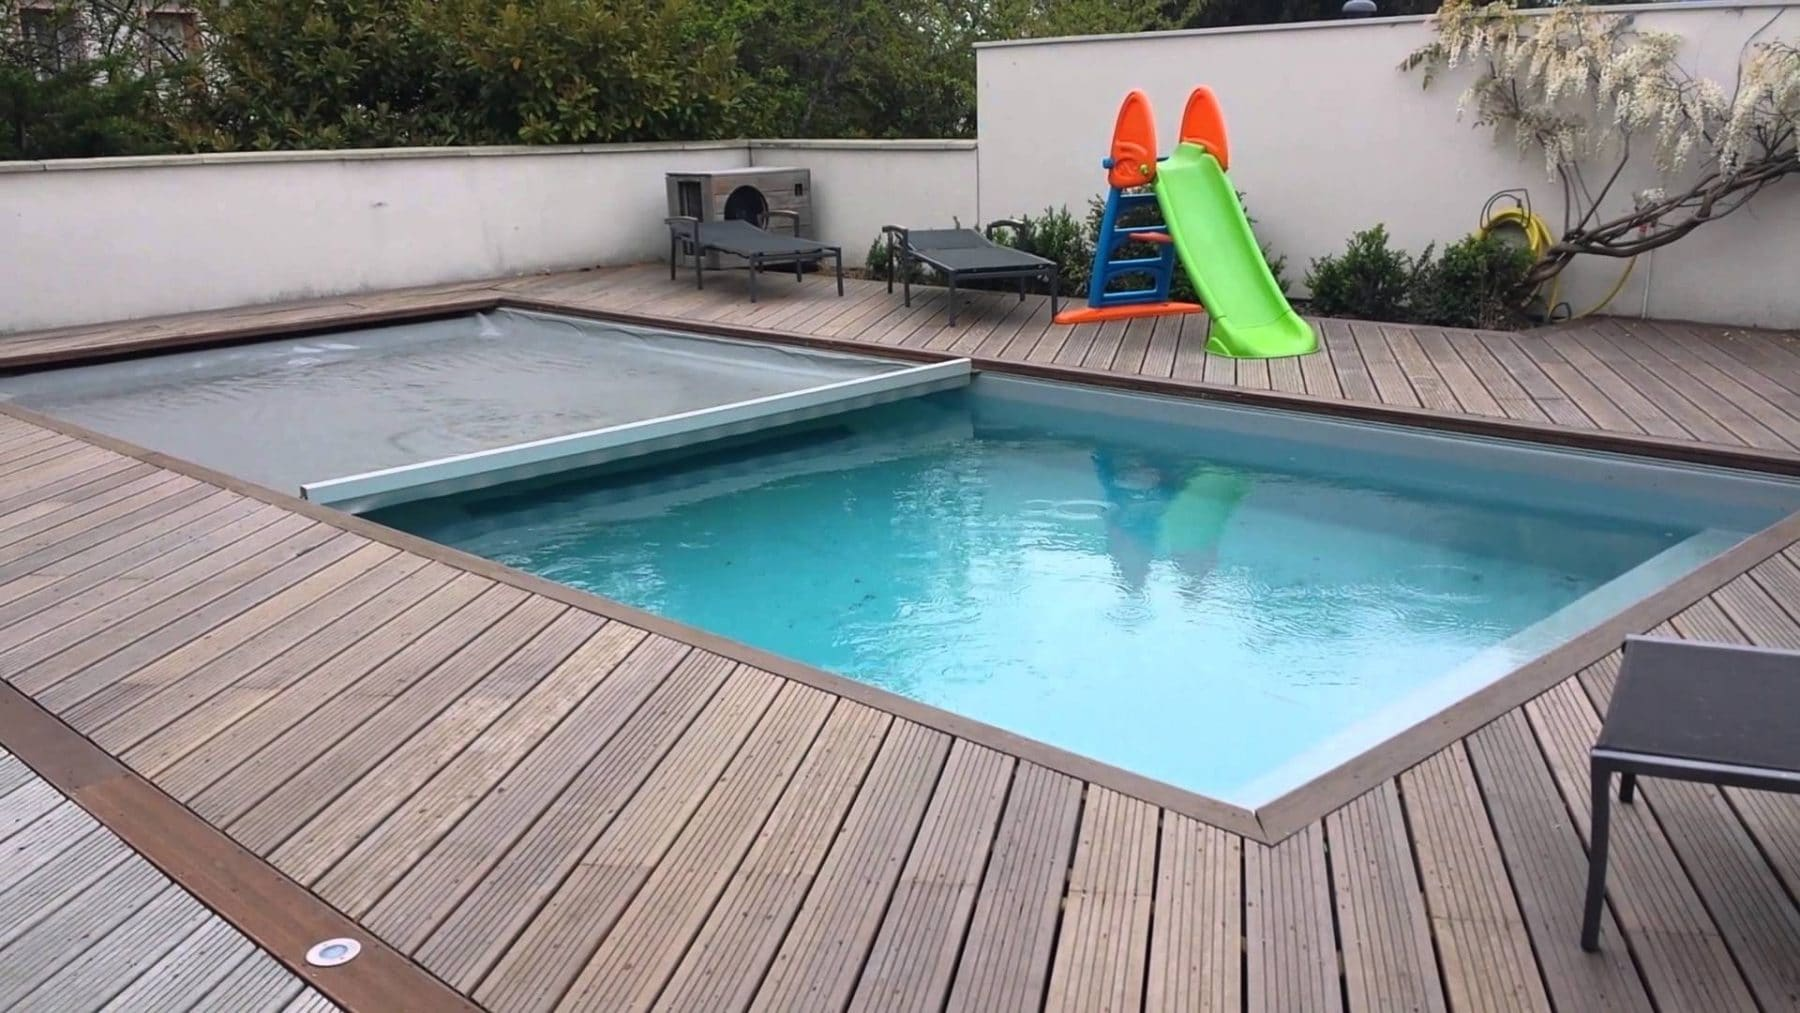 couverture de protection piscine